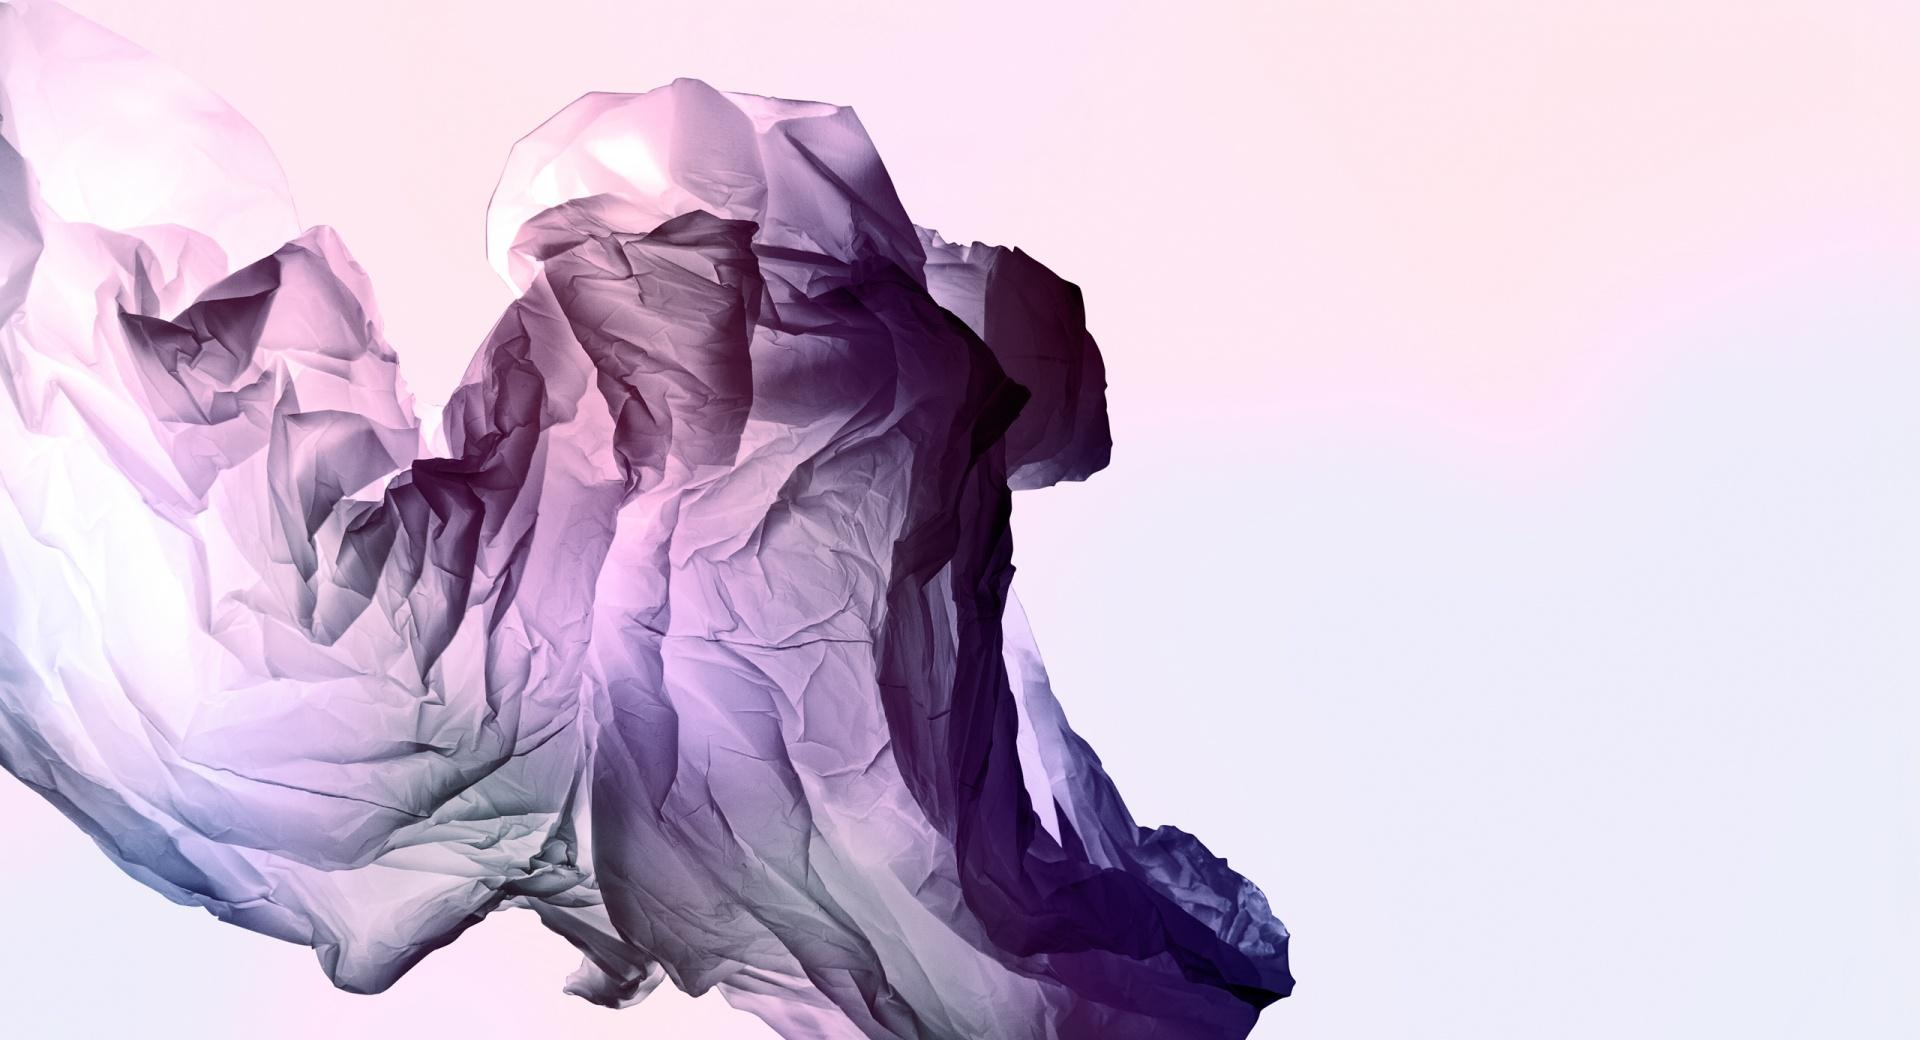 Wrinkled Paper wallpapers HD quality